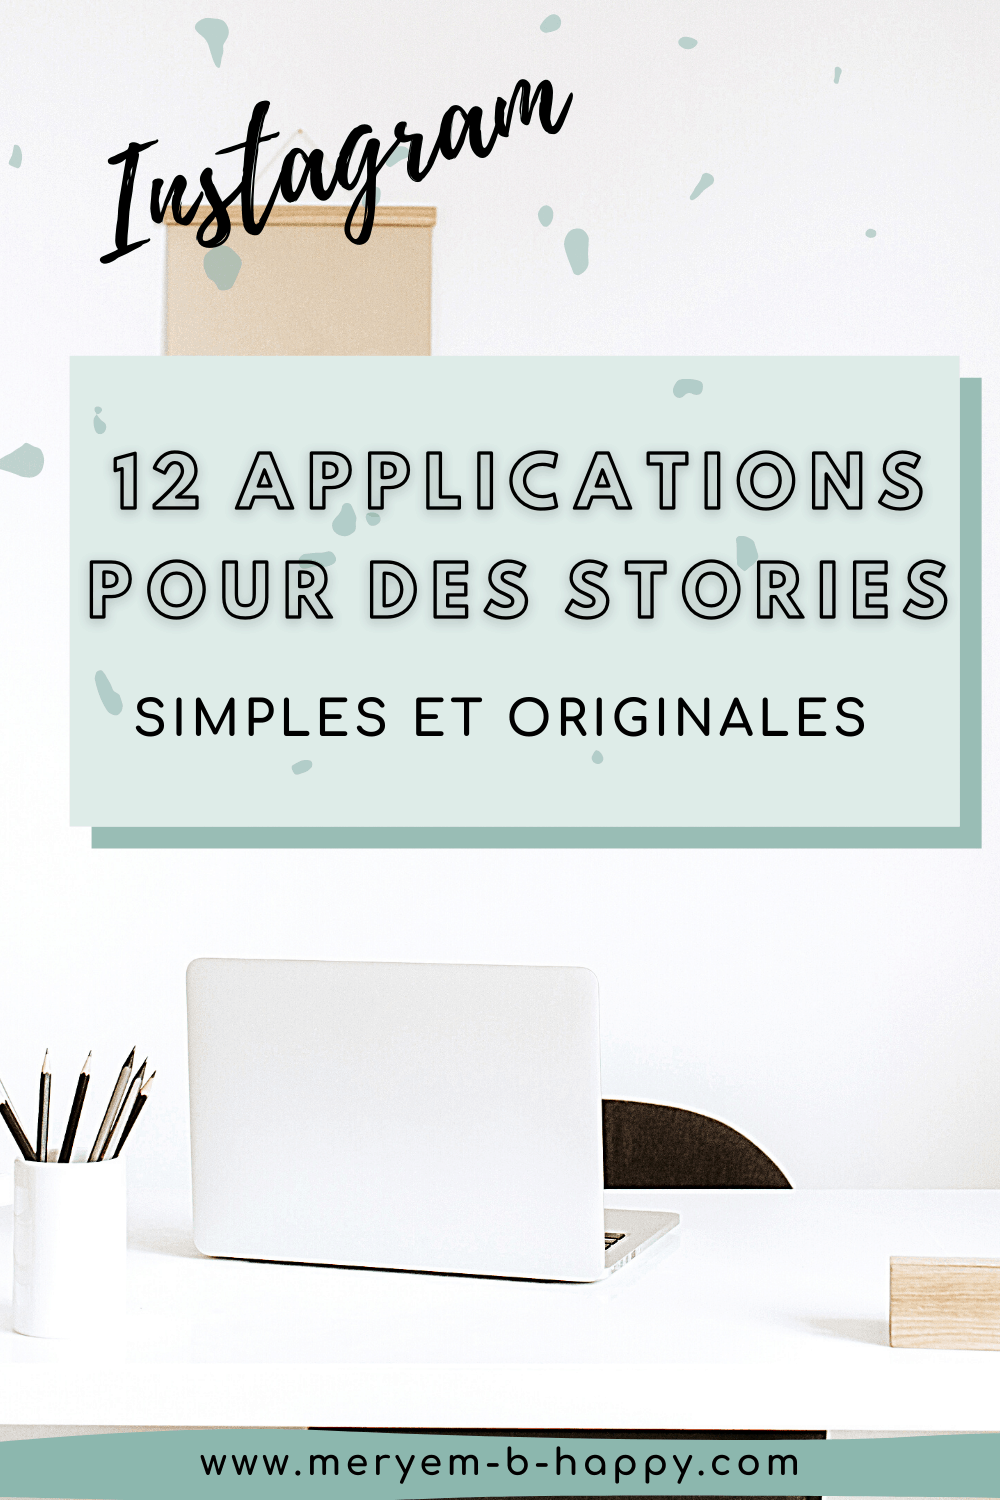 Instagram_ 12 applications pour des stories simples et originales